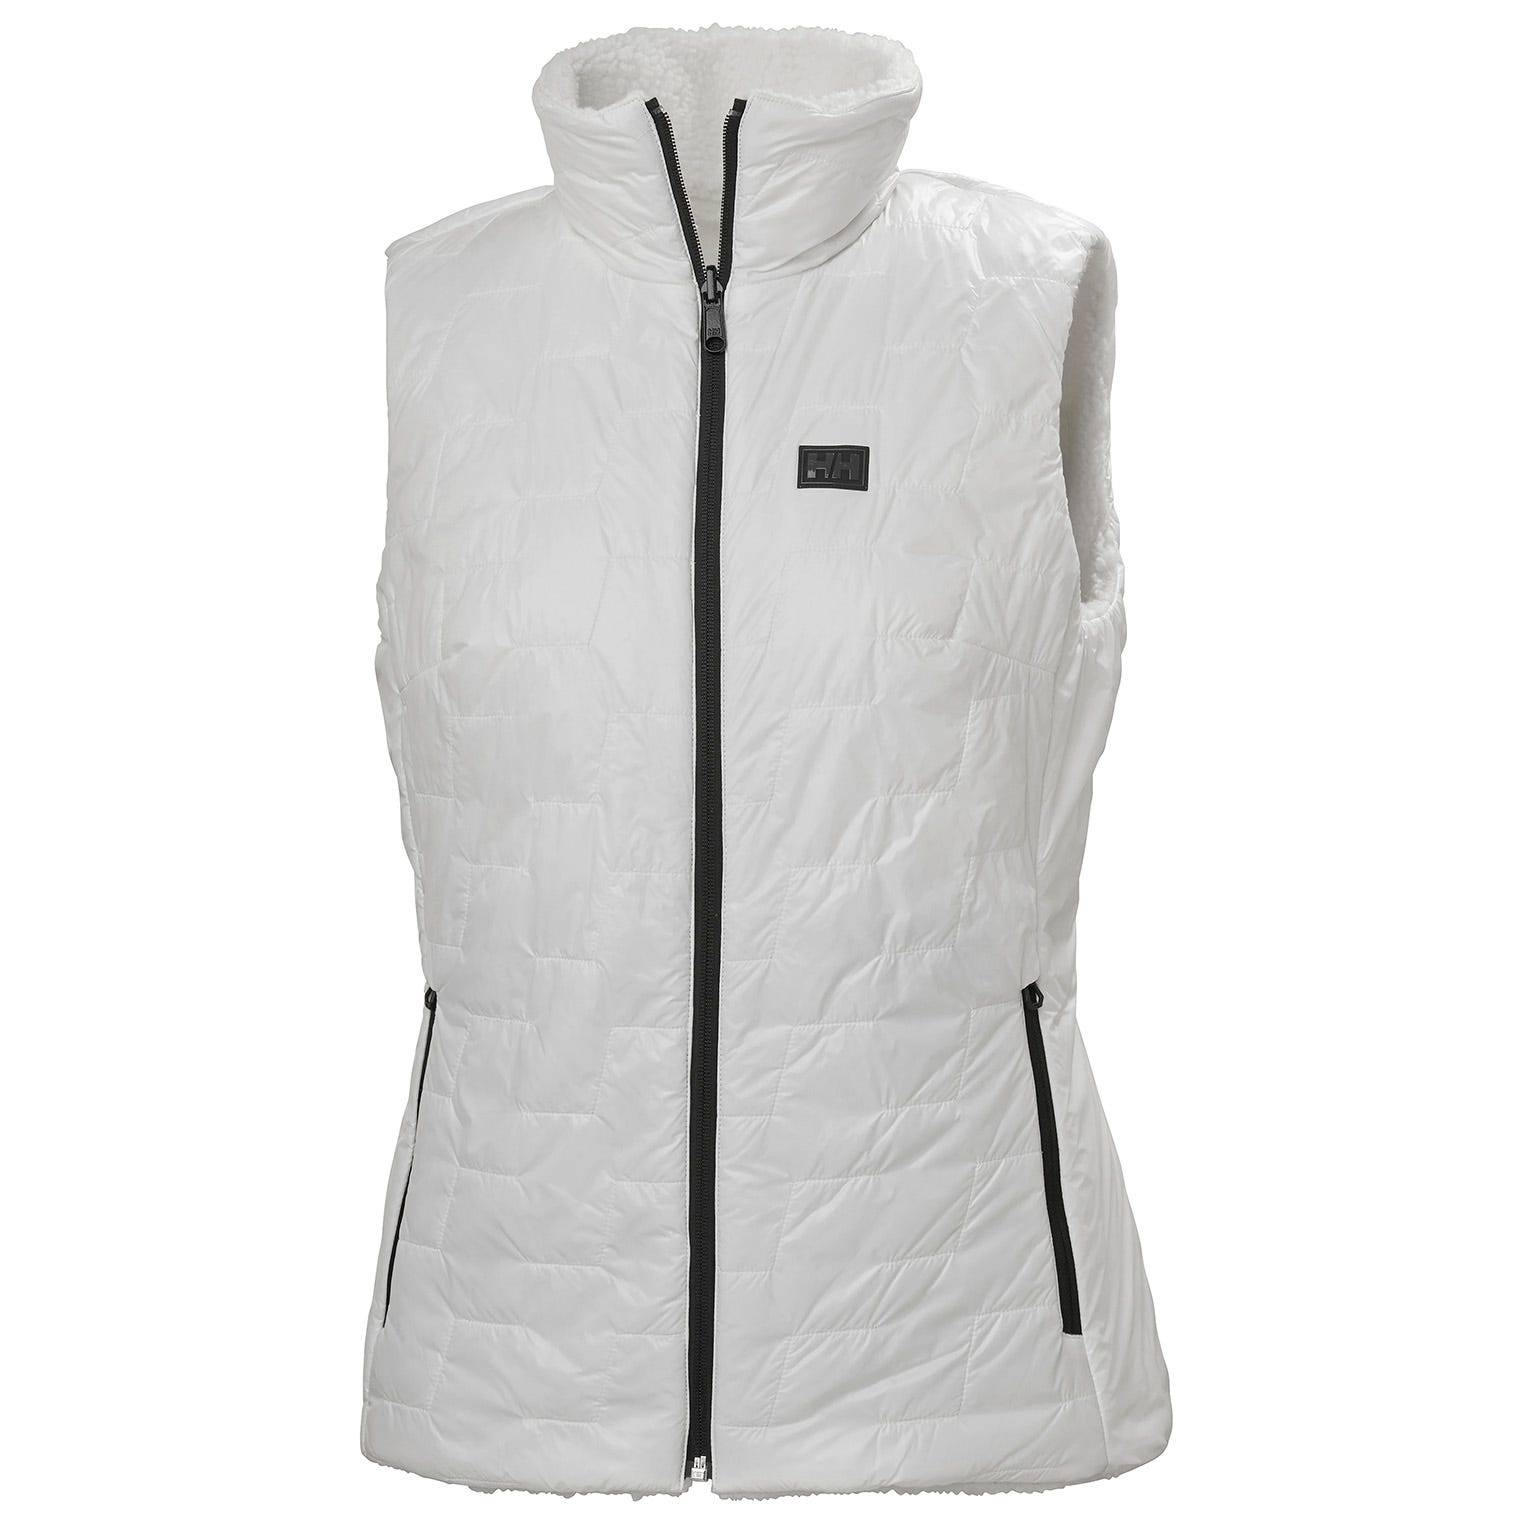 Helly Hansen W Lifaloft Propile Vest Womens Midlayer White XL